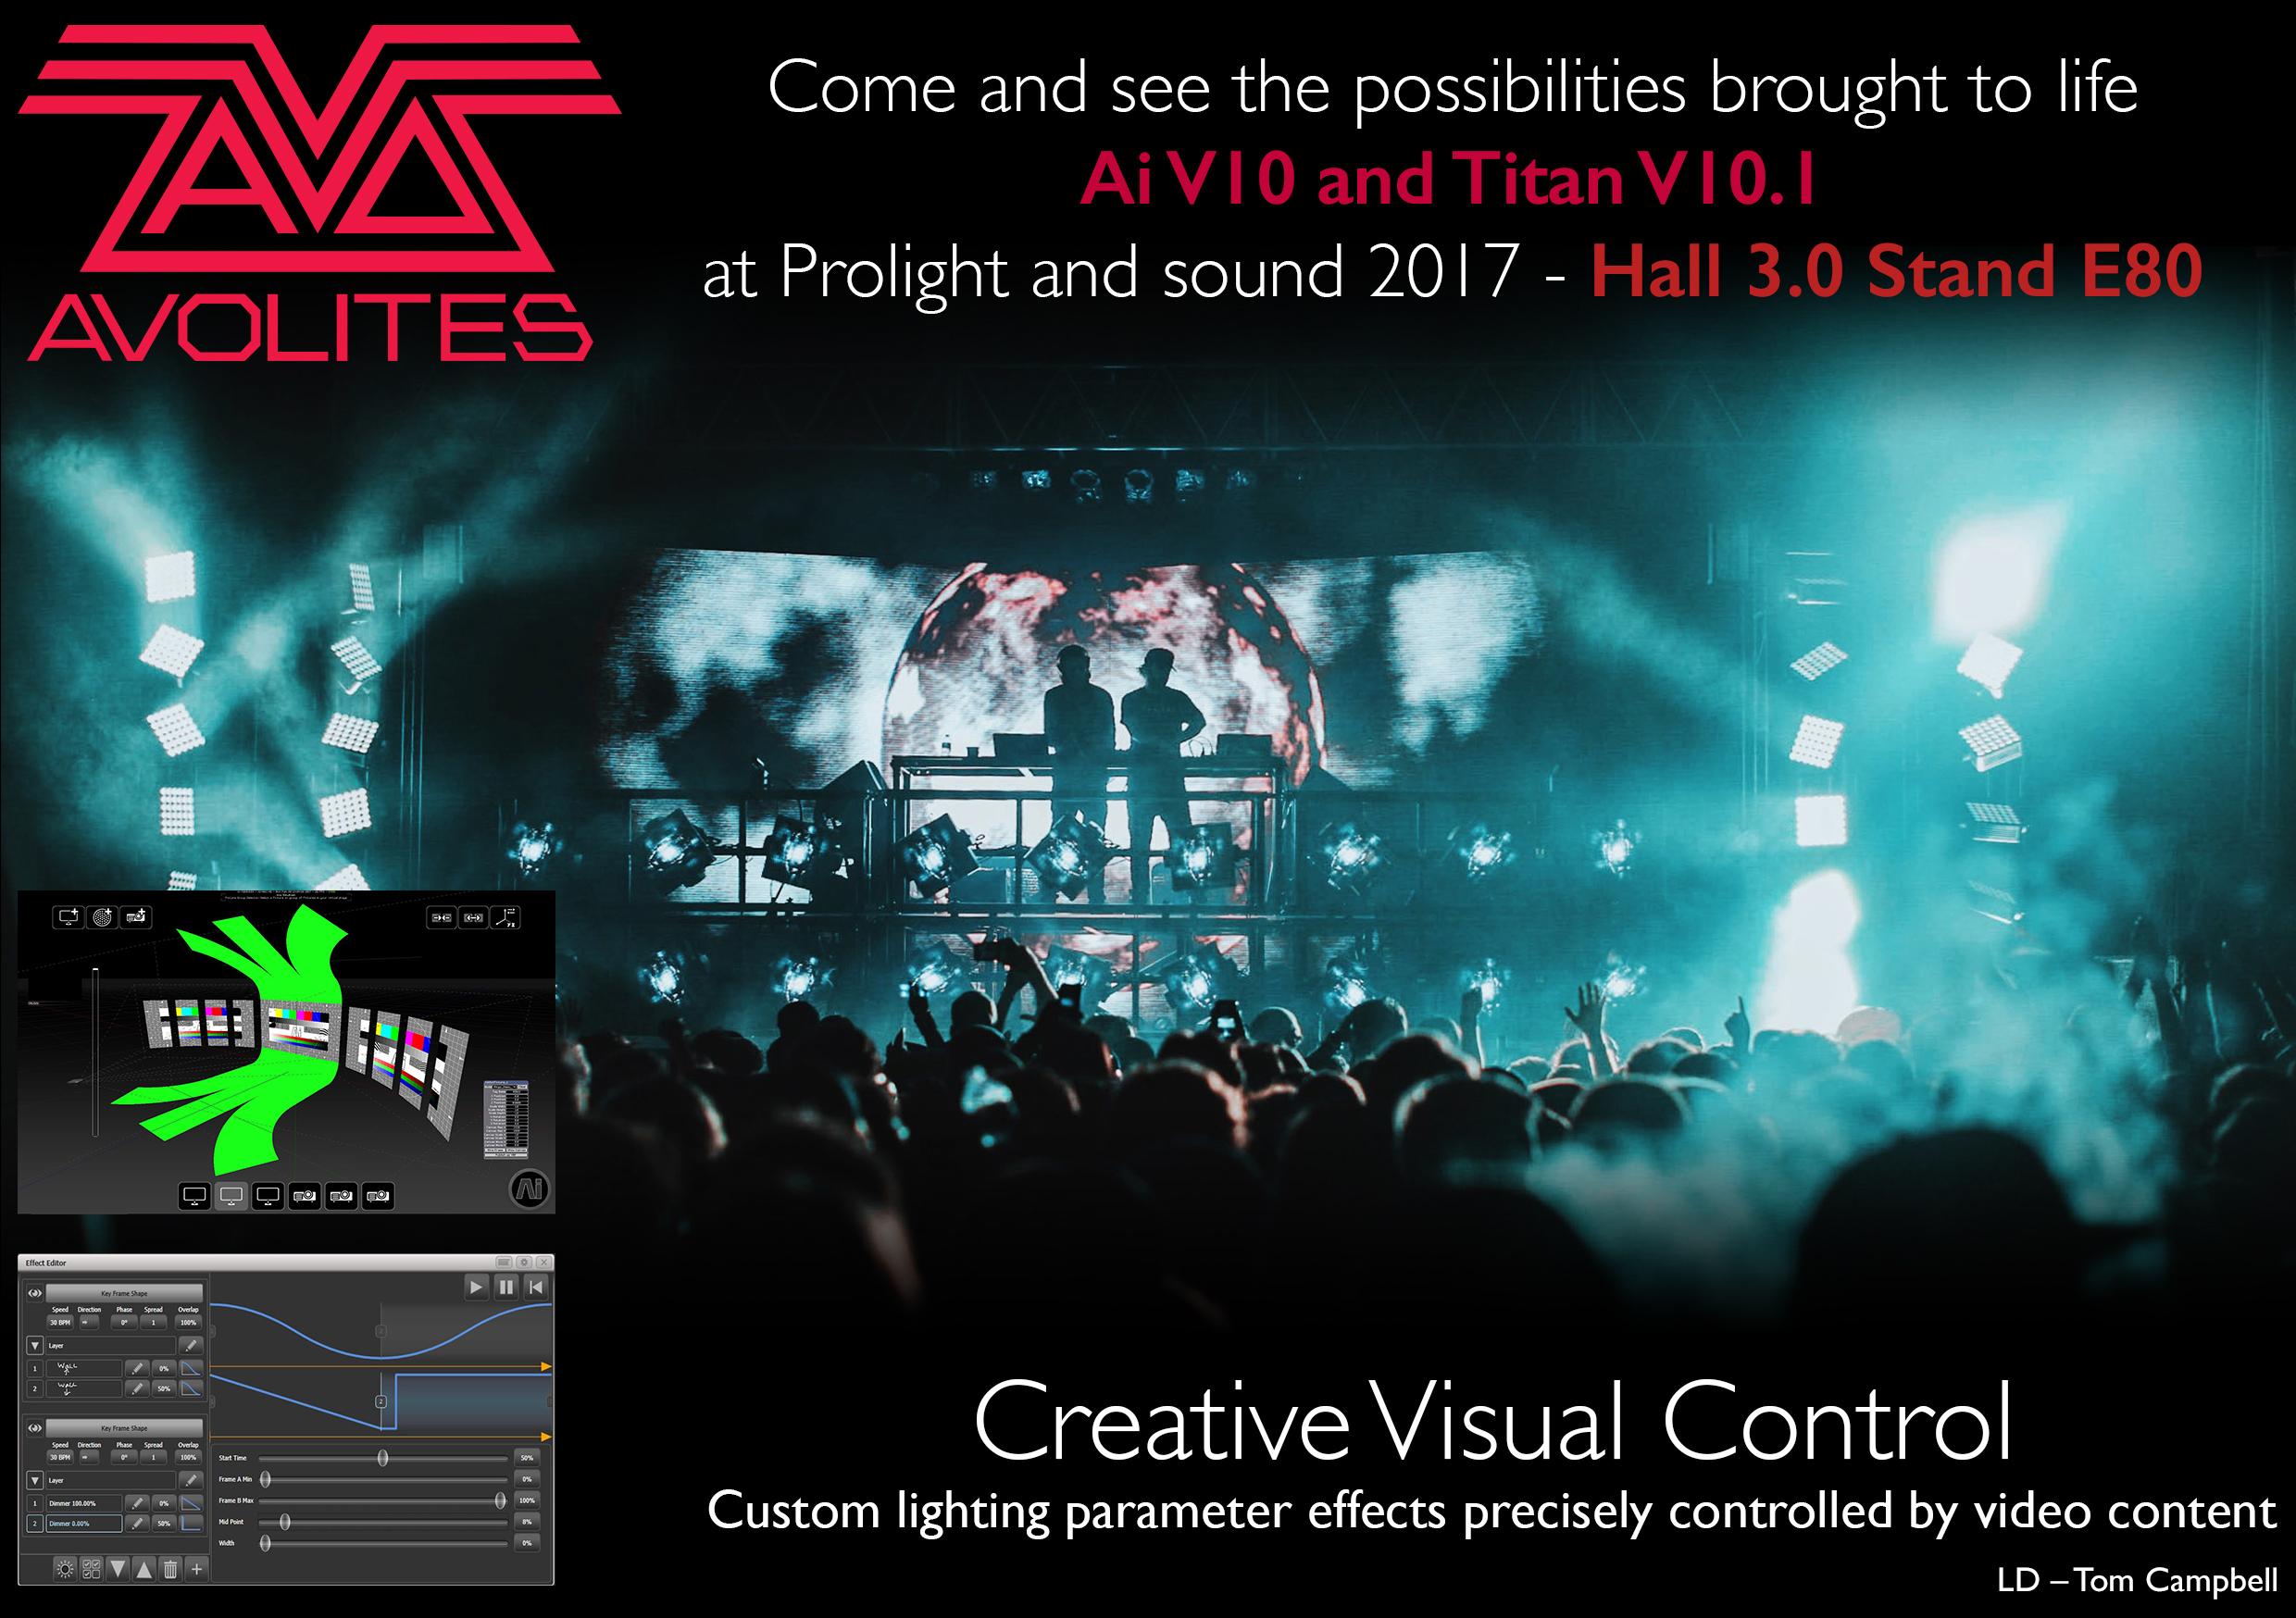 Avolites to showcase trailblazing lighting and video integration at Prolight + Sound 2017